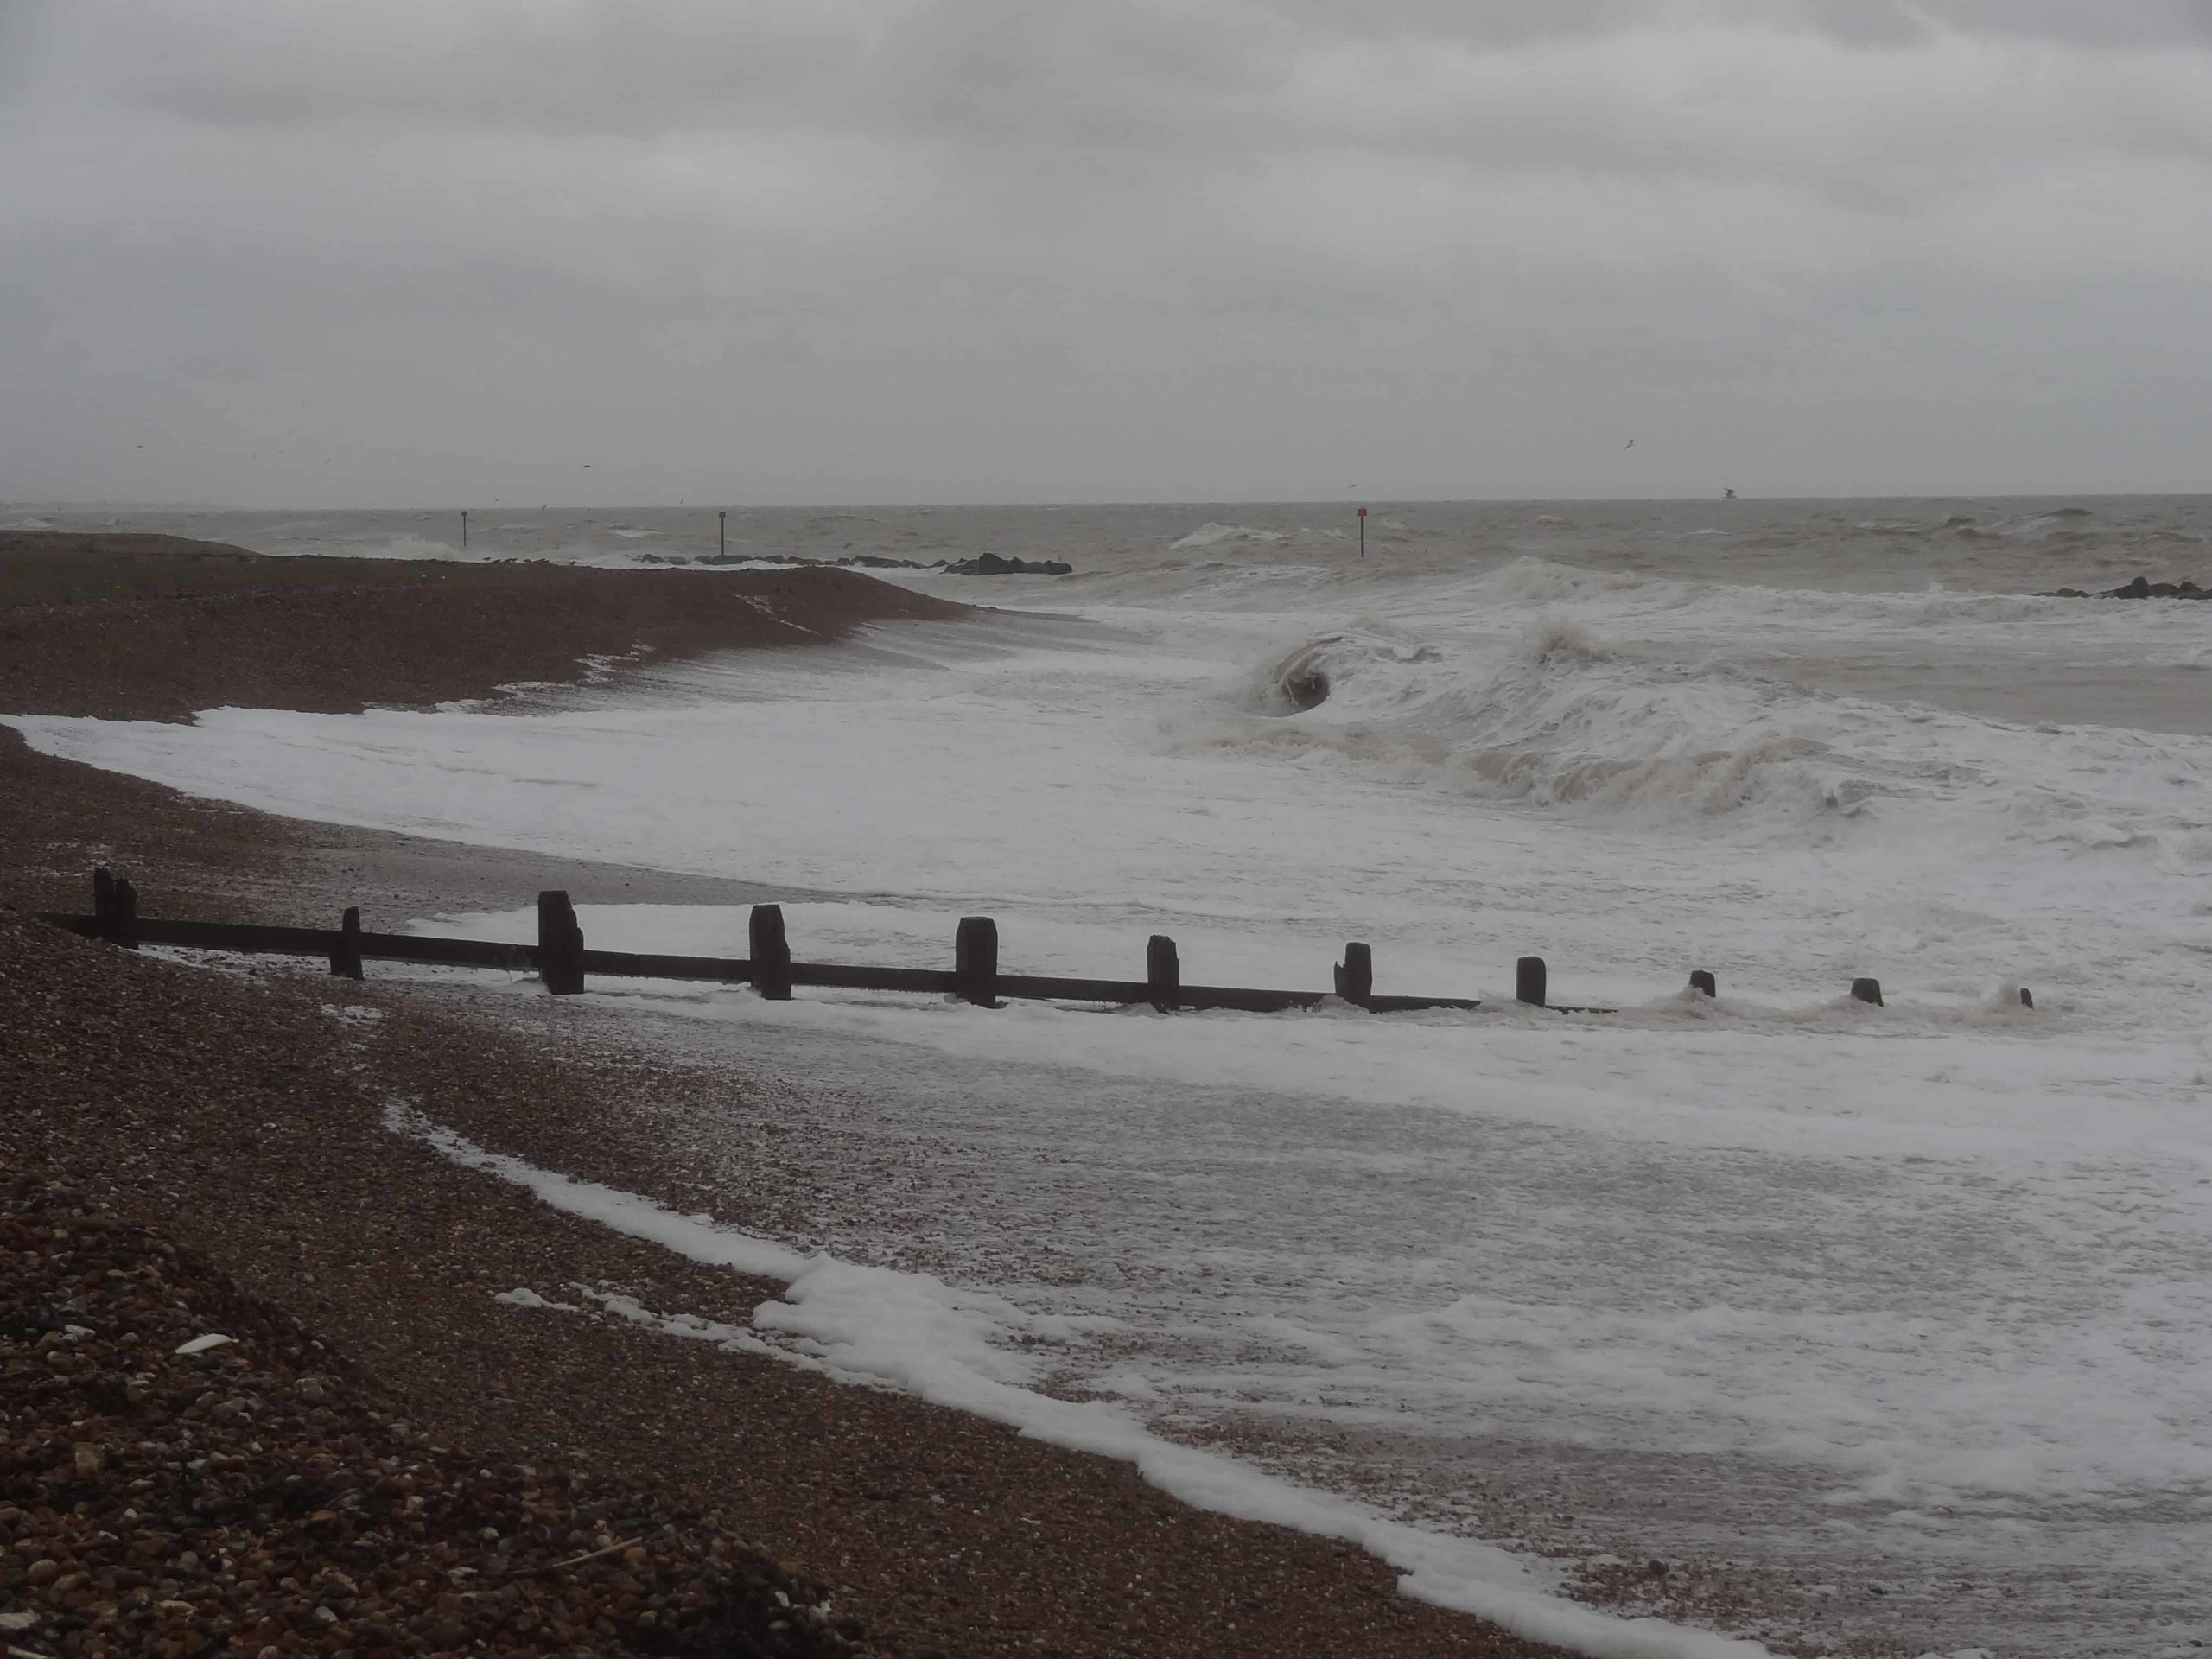 Groynes with waves on West Sussex beach